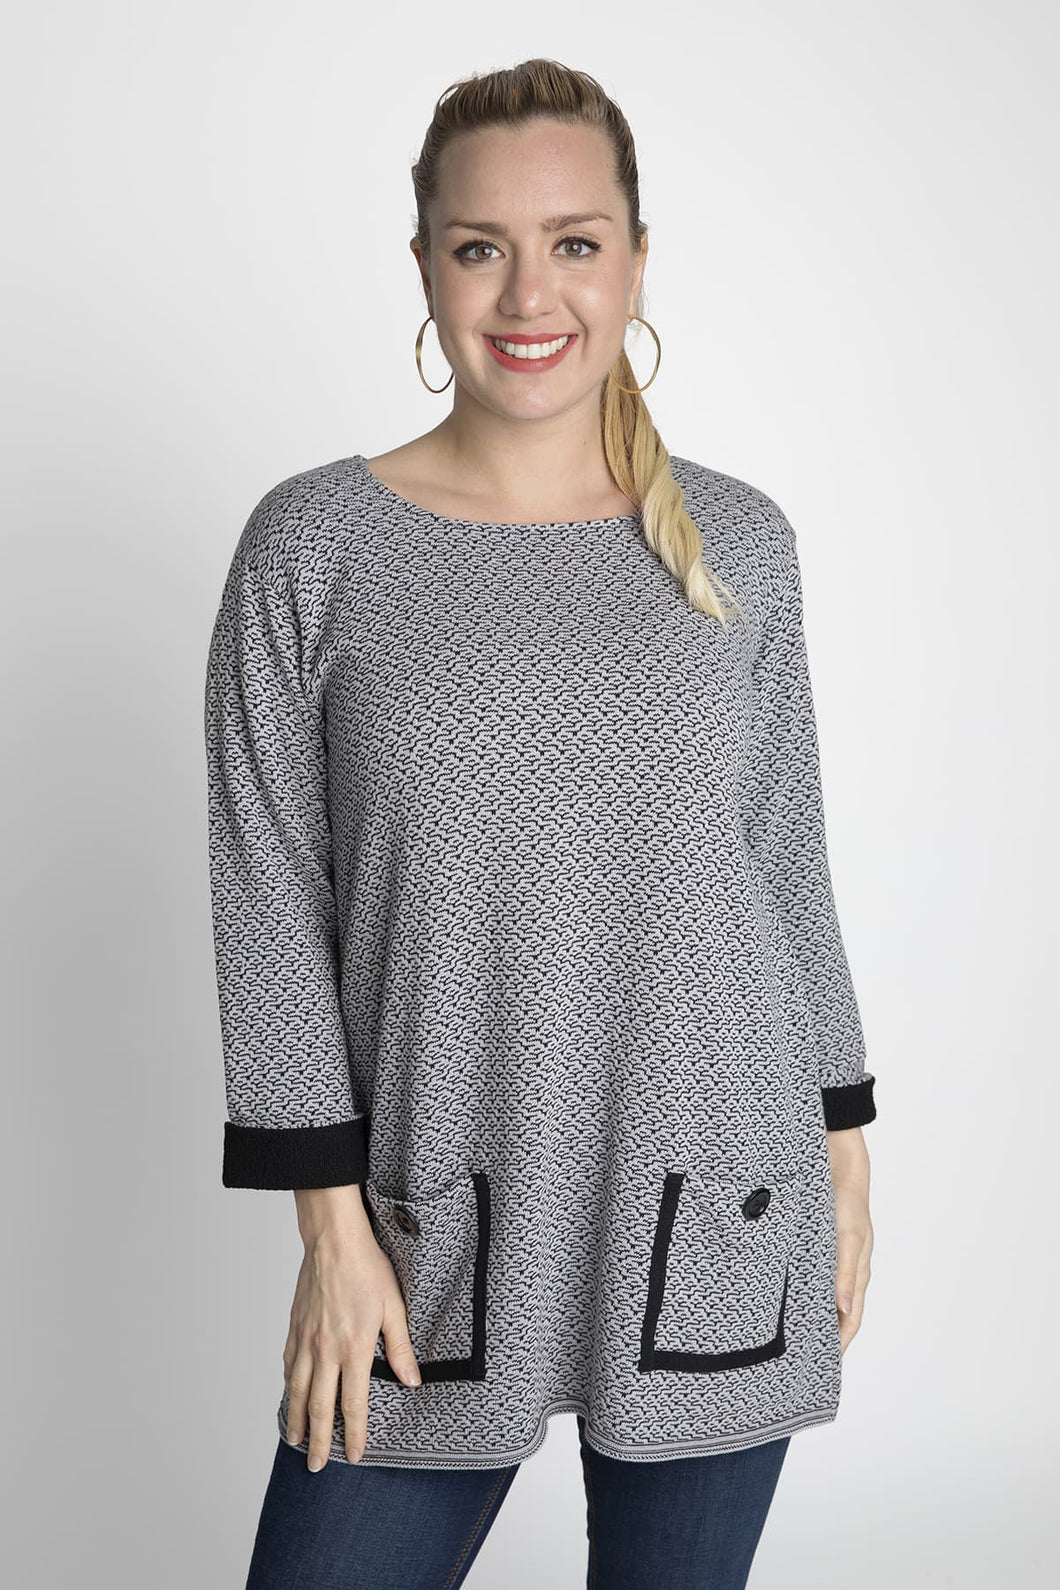 Margaret Winters Tweed Tunic With Pockets